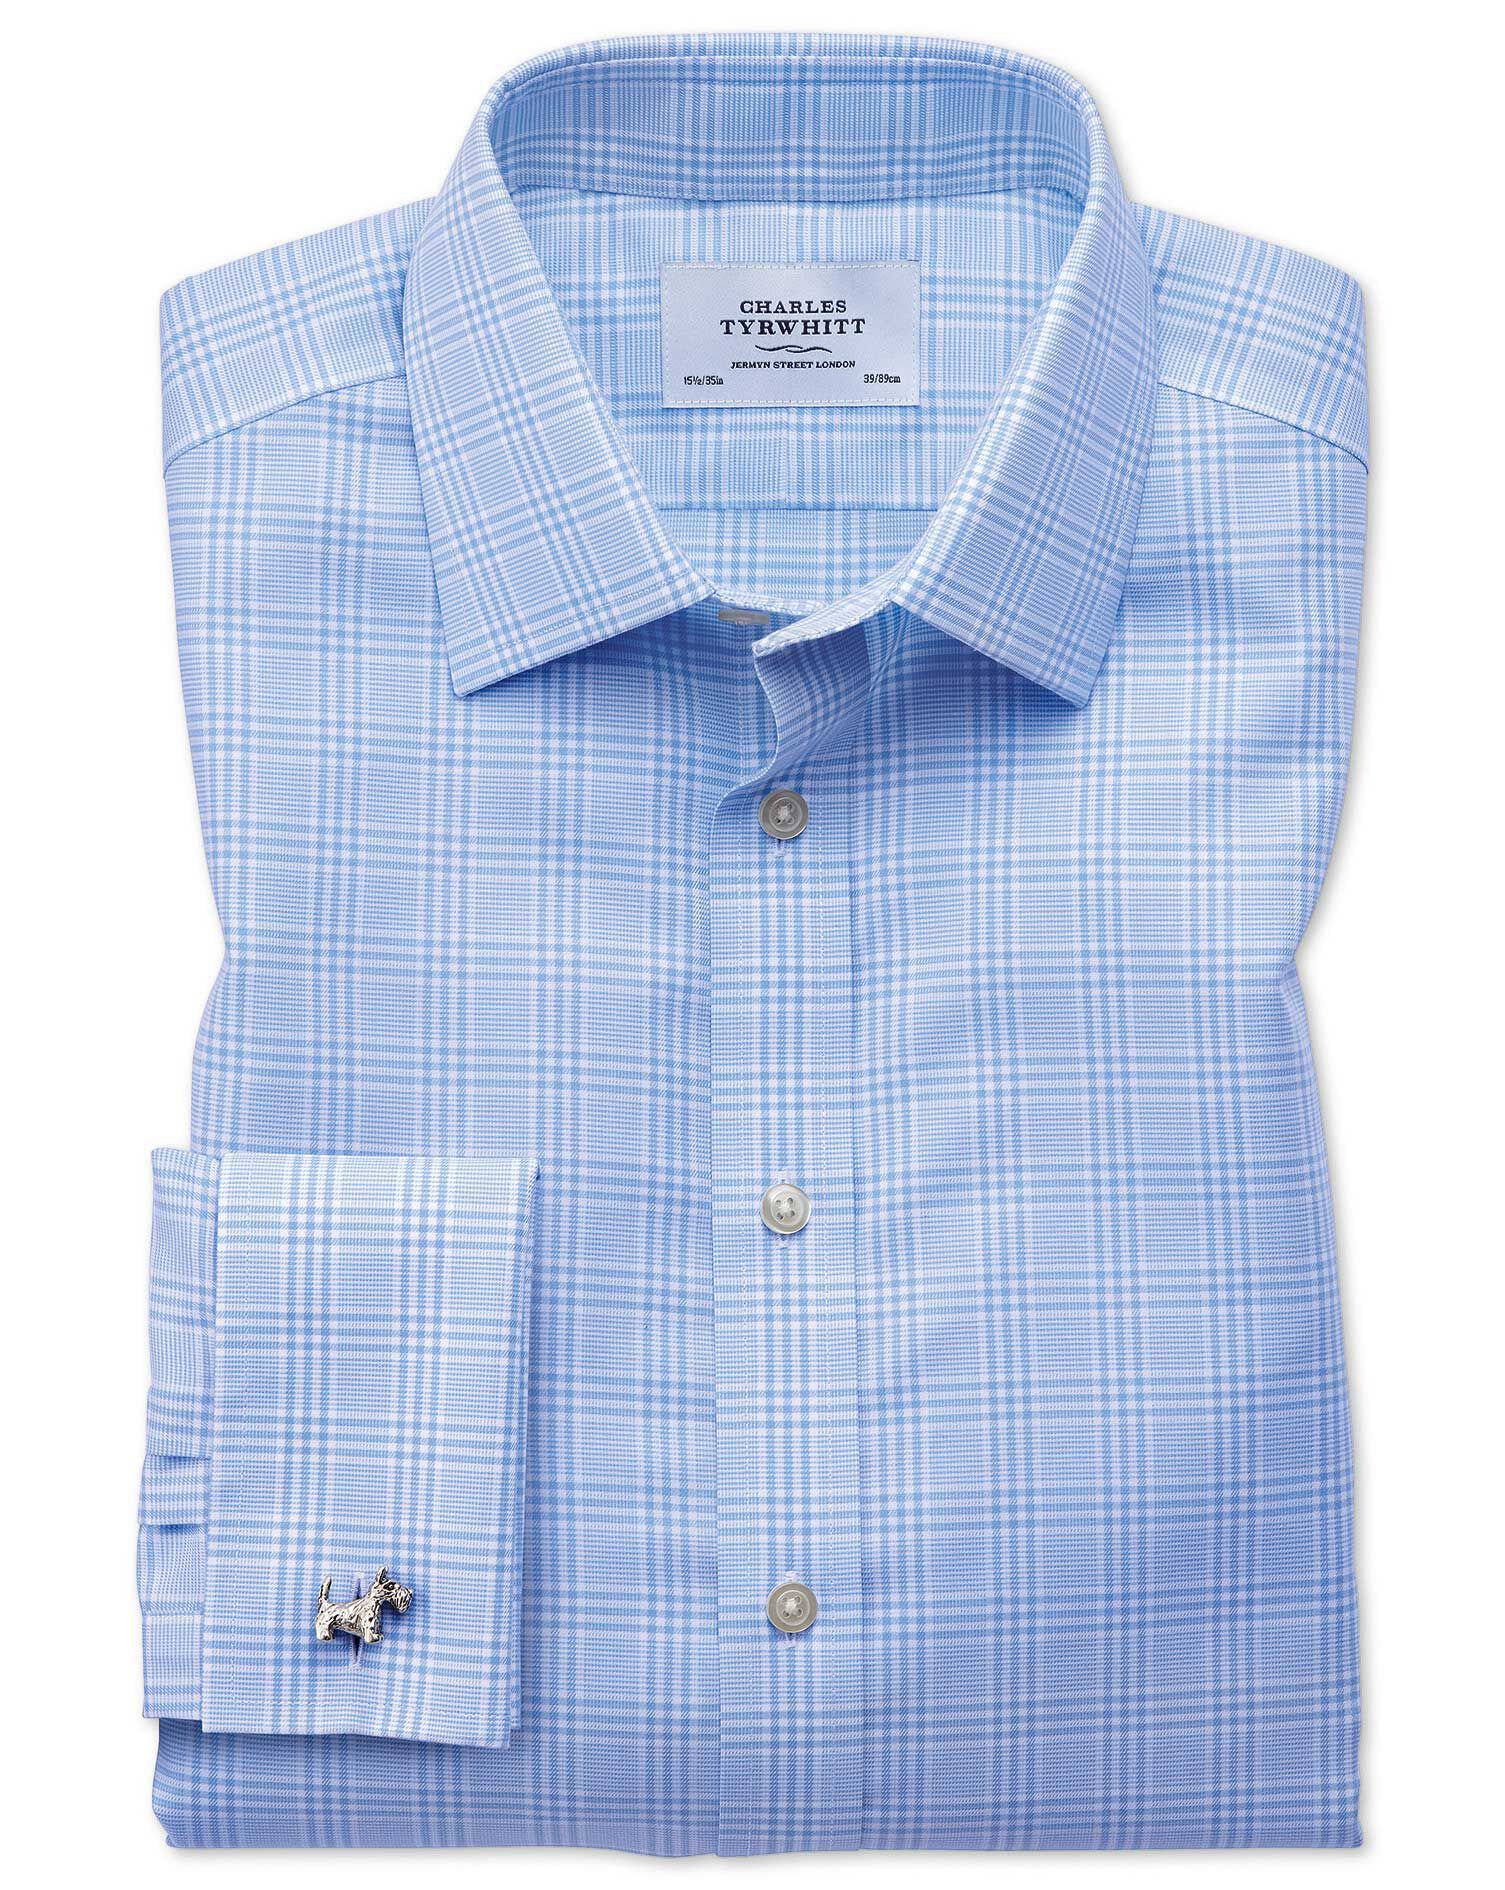 Slim Fit Non-Iron Prince Of Wales Sky Blue Cotton Formal Shirt Double Cuff Size 16.5/33 by Charles T